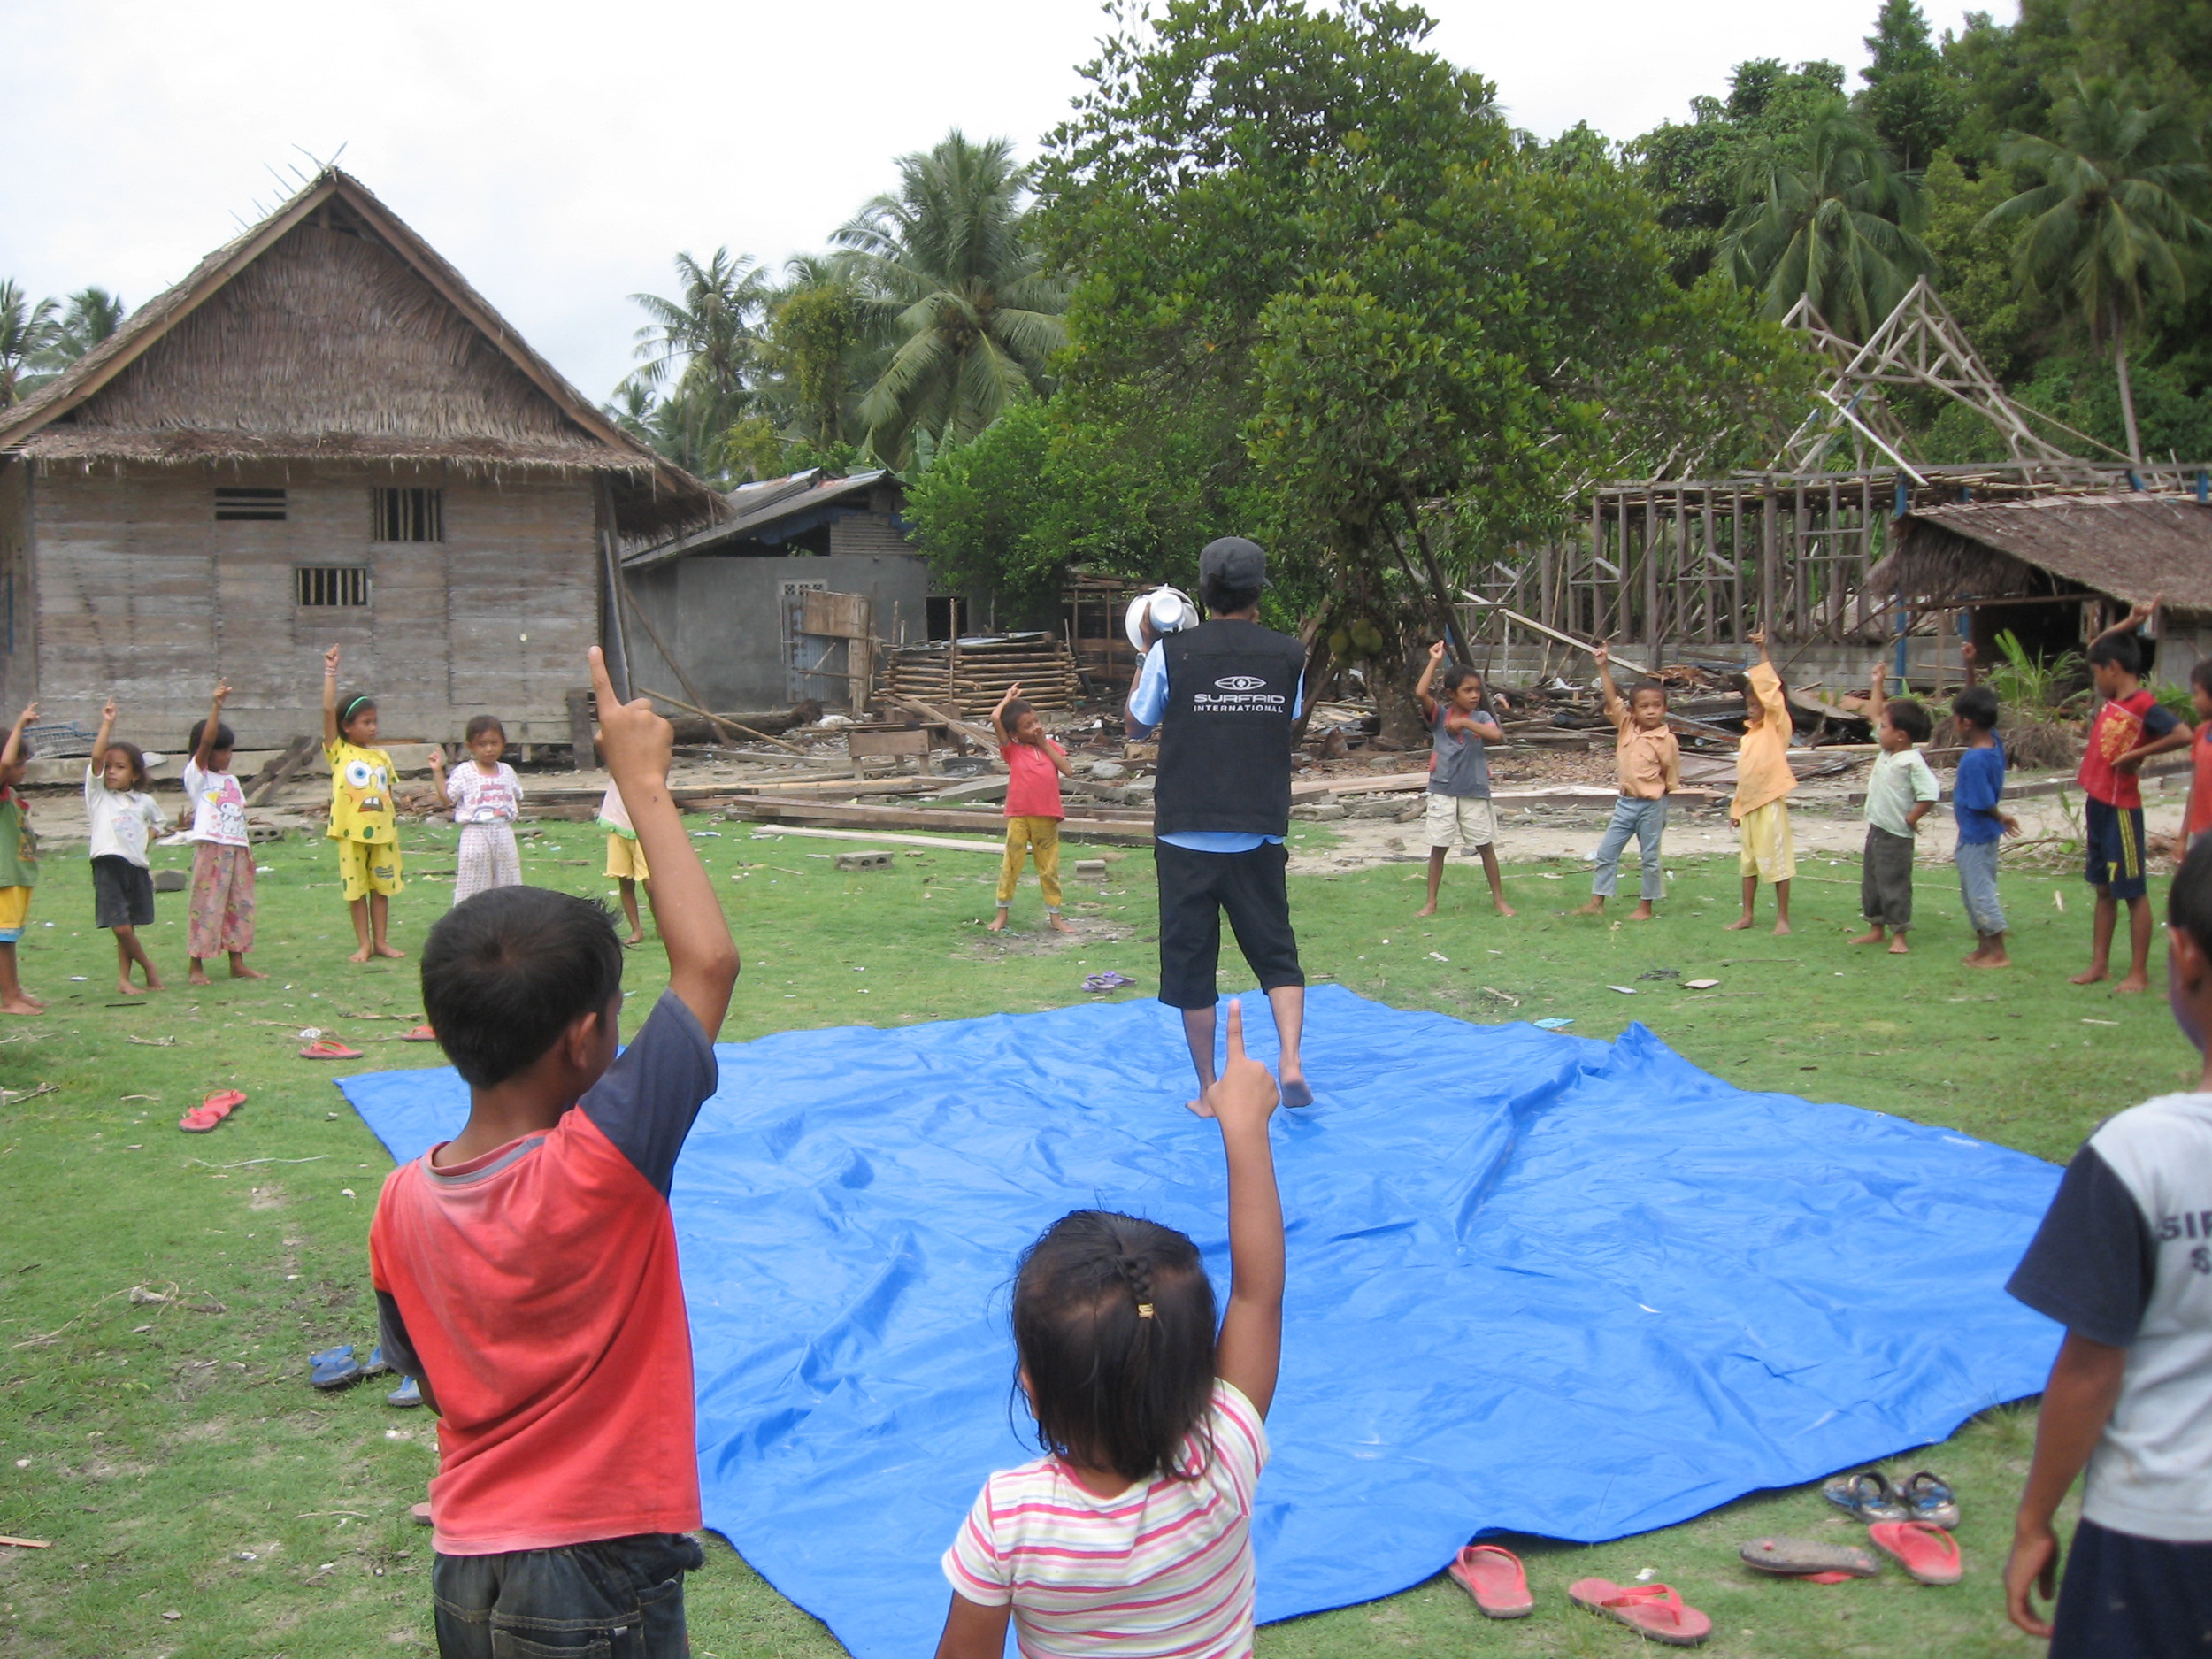 SurfAid psychologist Ian runs fun activities for the children of Masokut village, which was extensively damaged by the tsunami. Many children and parents are still traumatised. Photo: Stacey Howe/SurfAid